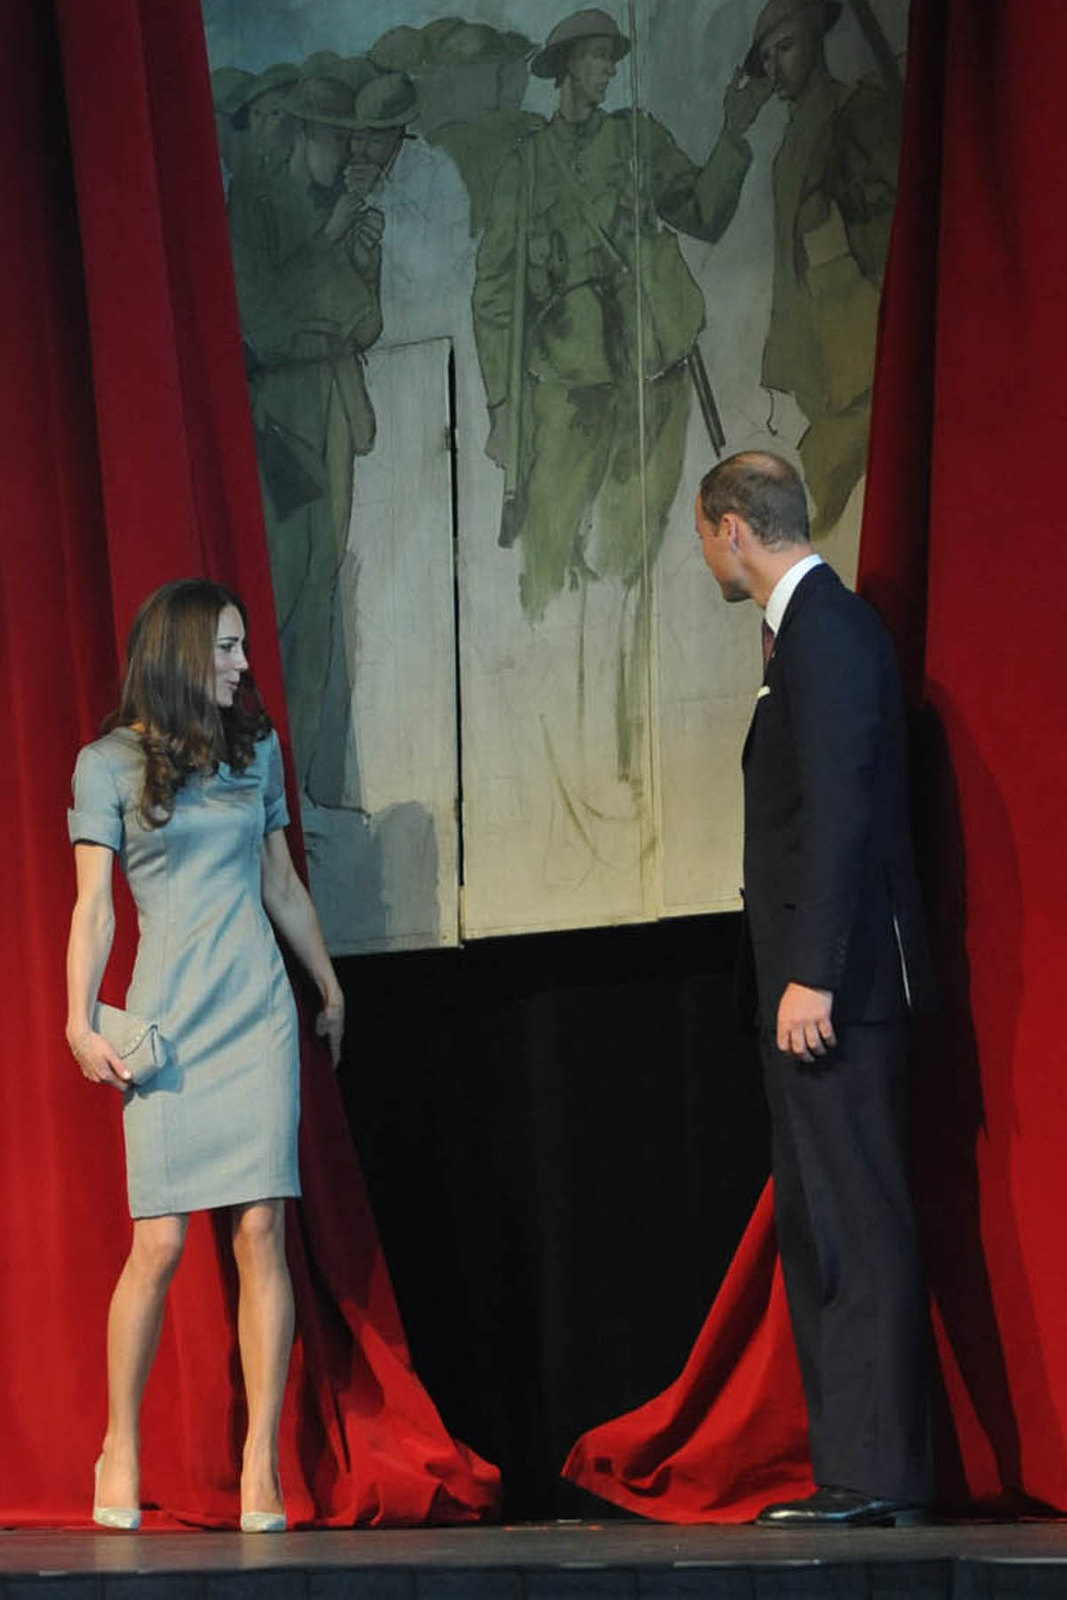 The Duke and Duchess of cambridge at the War Museum during Canada tour in 2011